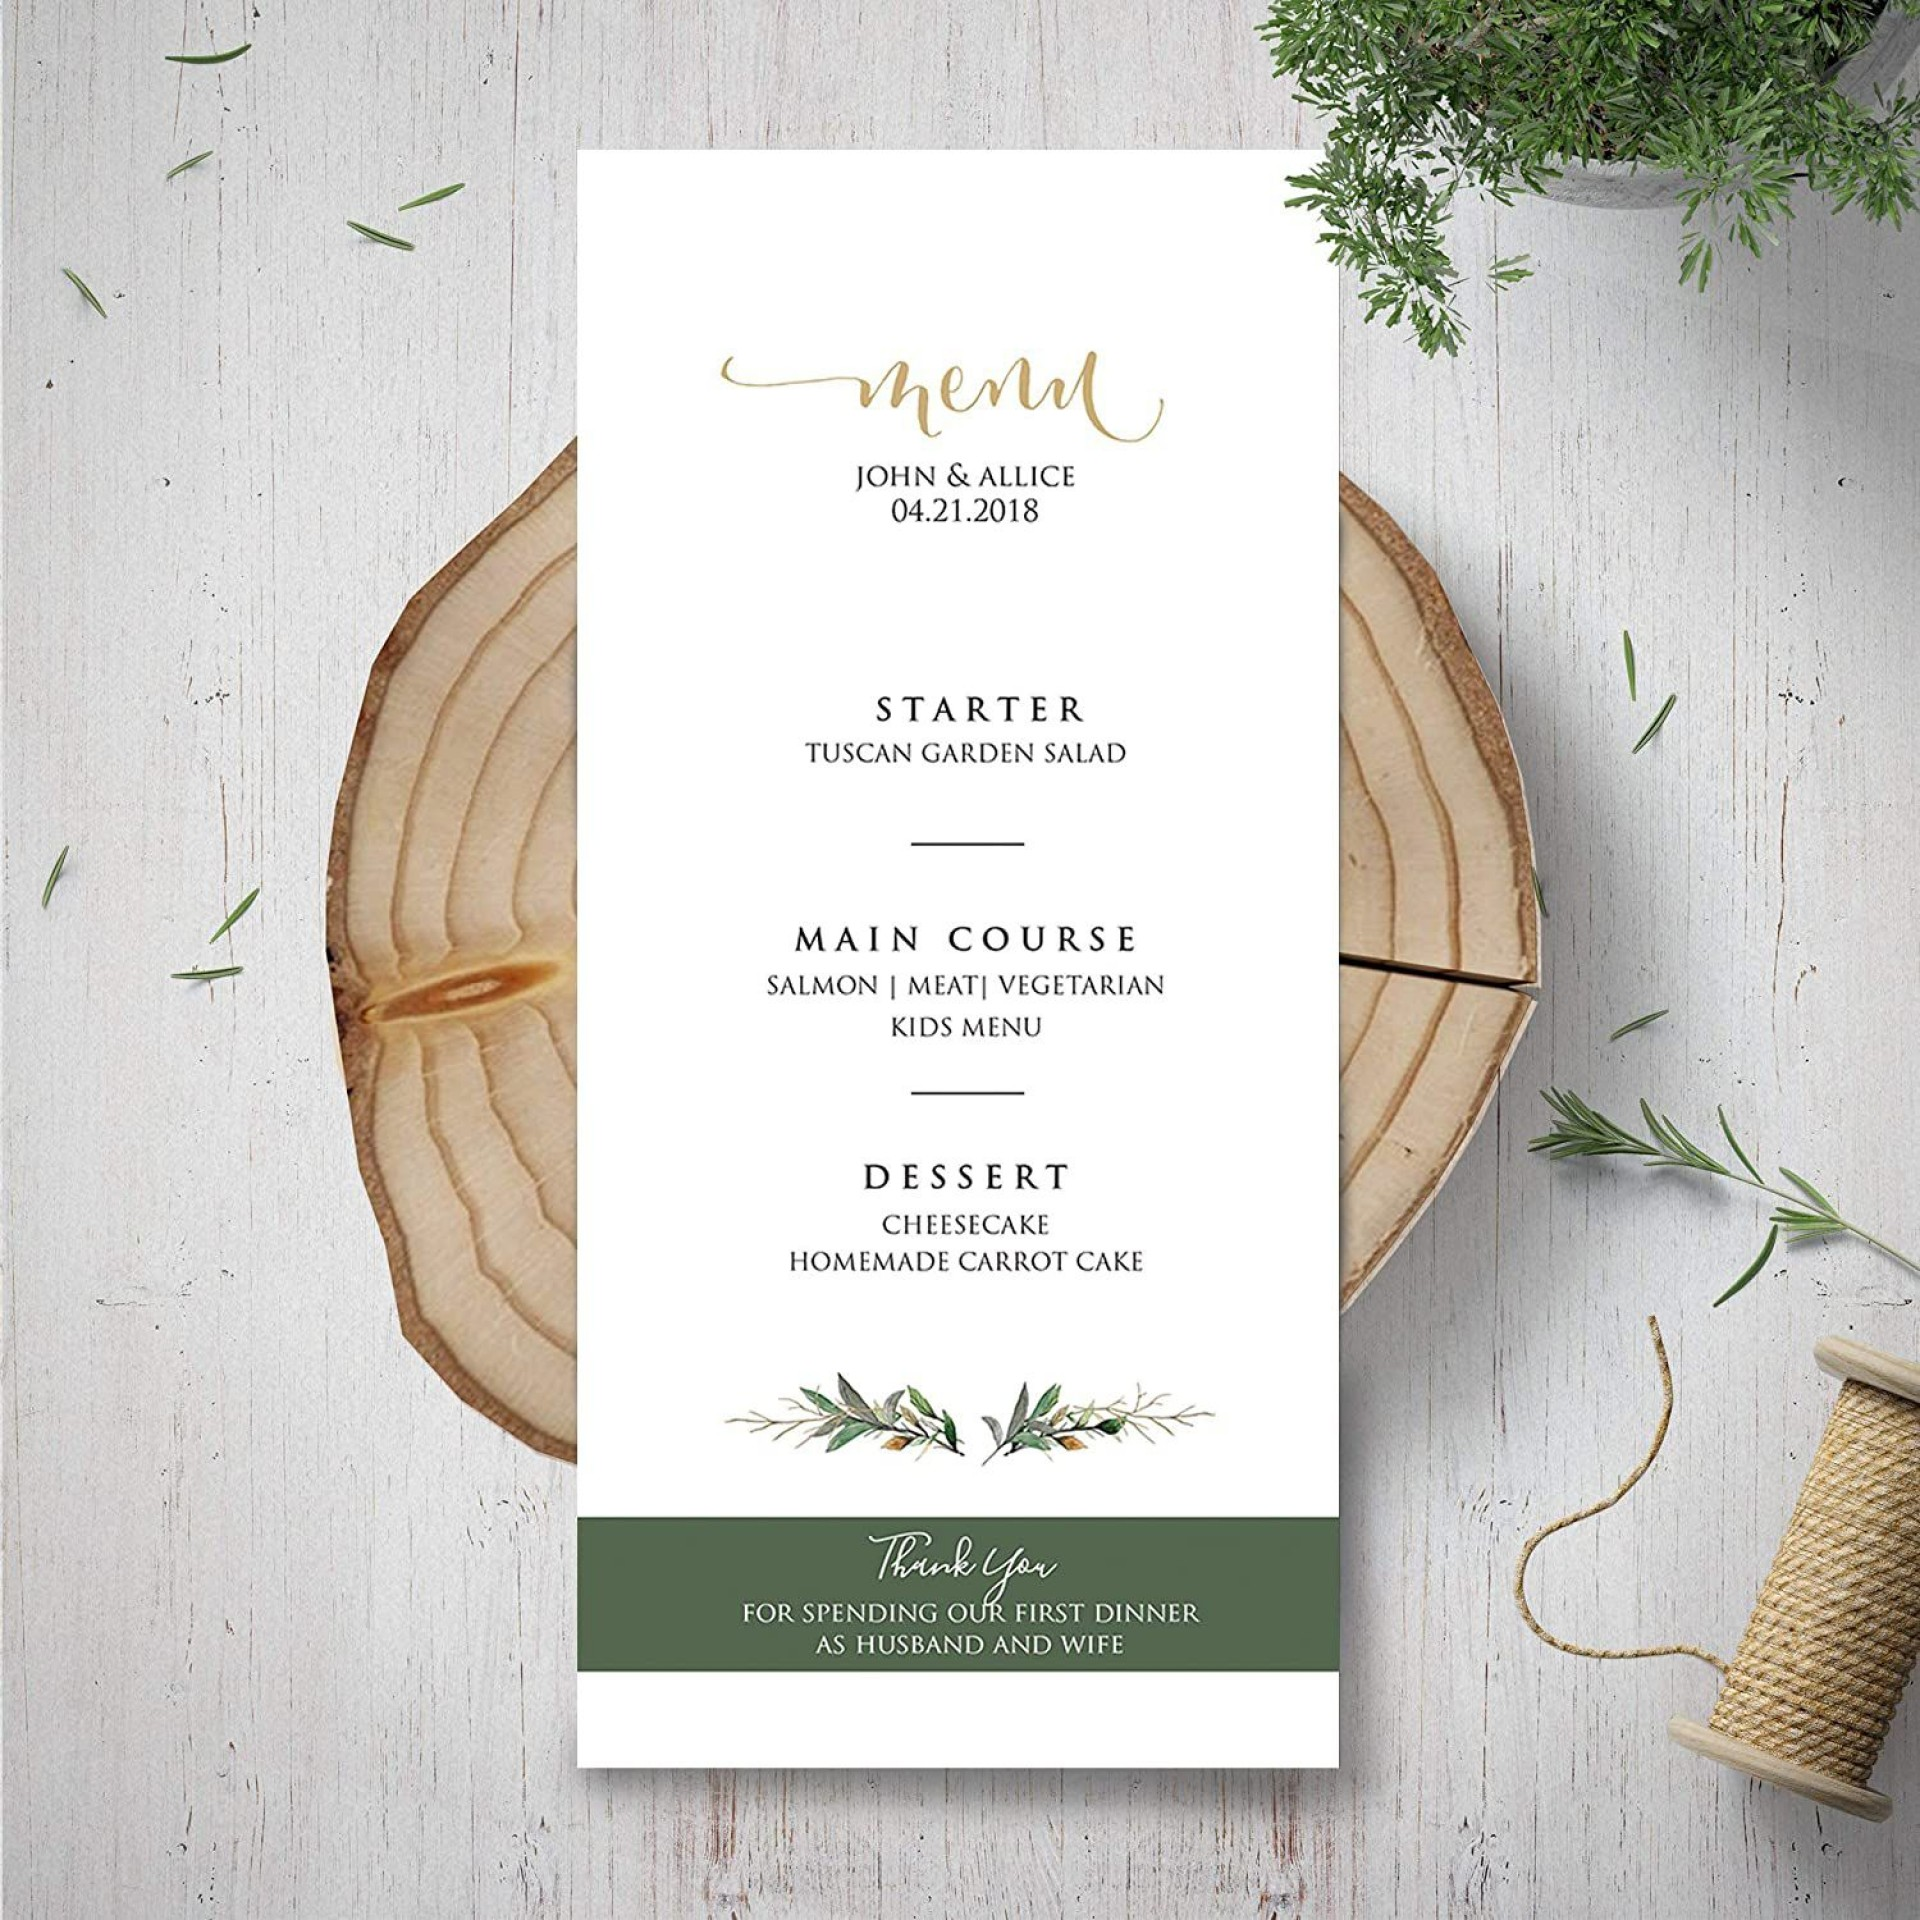 003 Exceptional Dinner Party Menu Template Inspiration  Card Free Italian Word1920